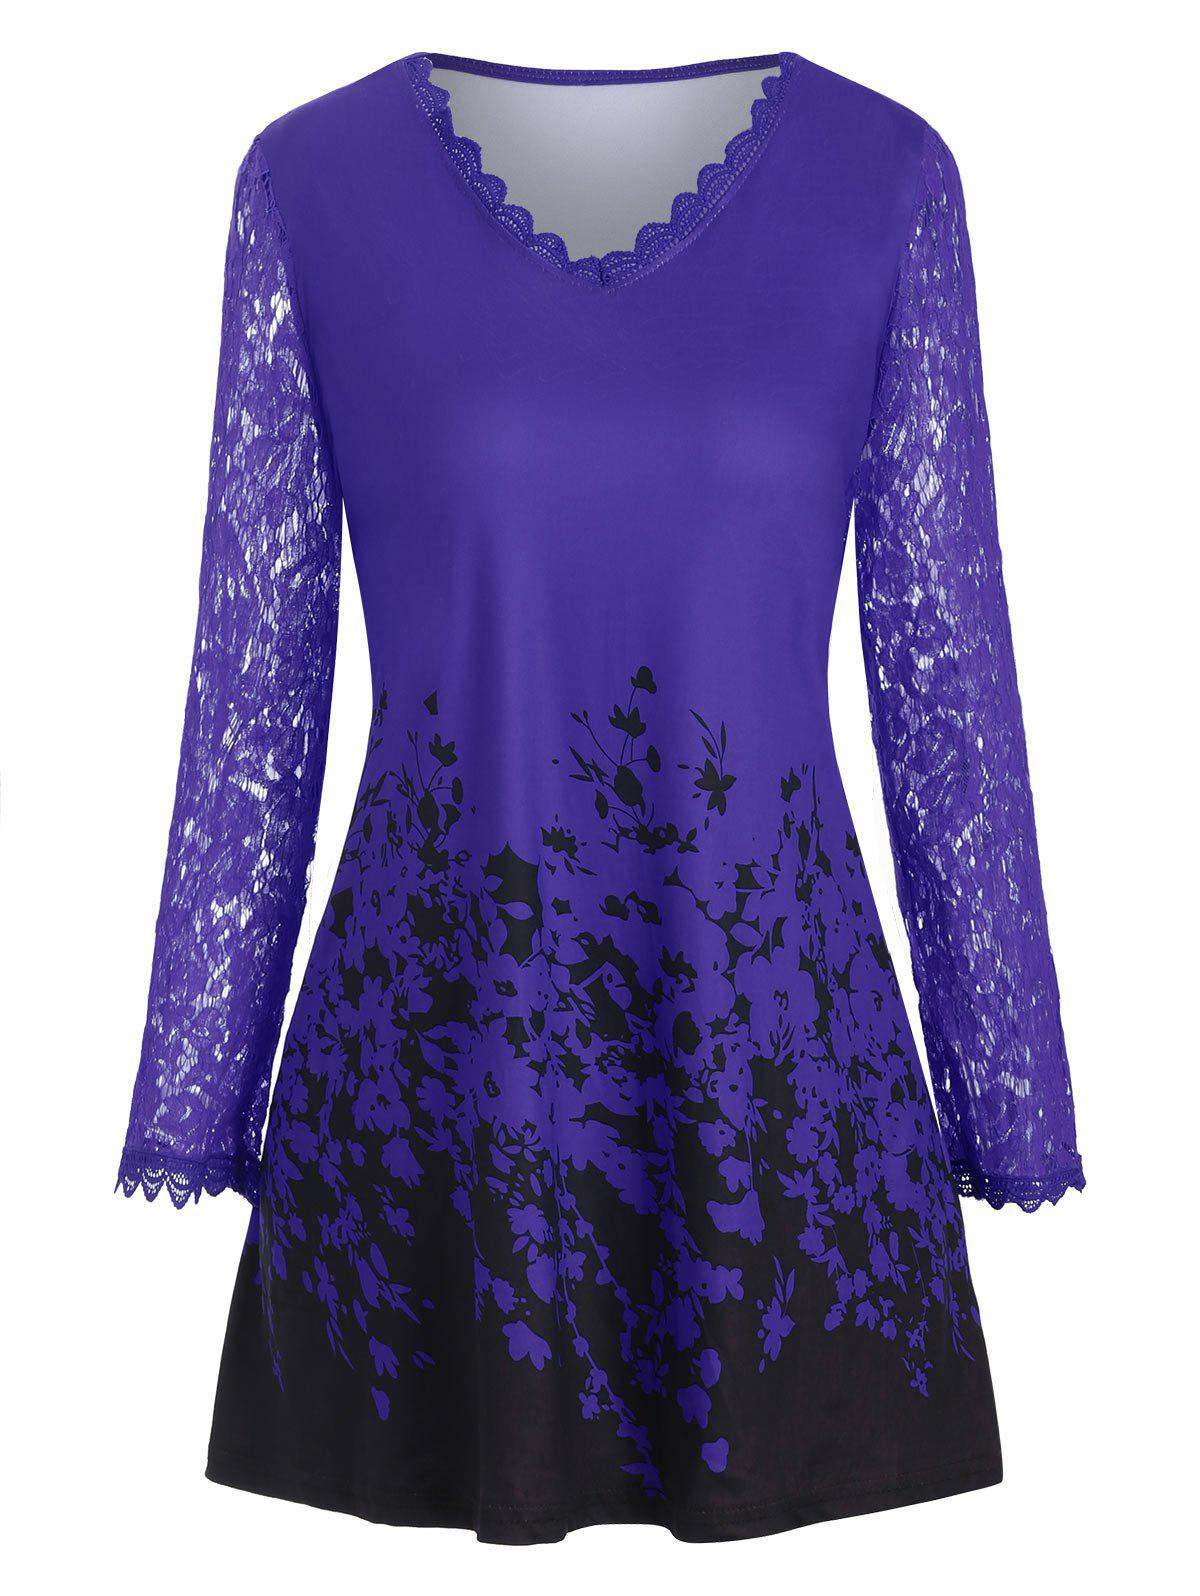 Plus Size Lace Sleeve Printed T Shirt - BLUE M